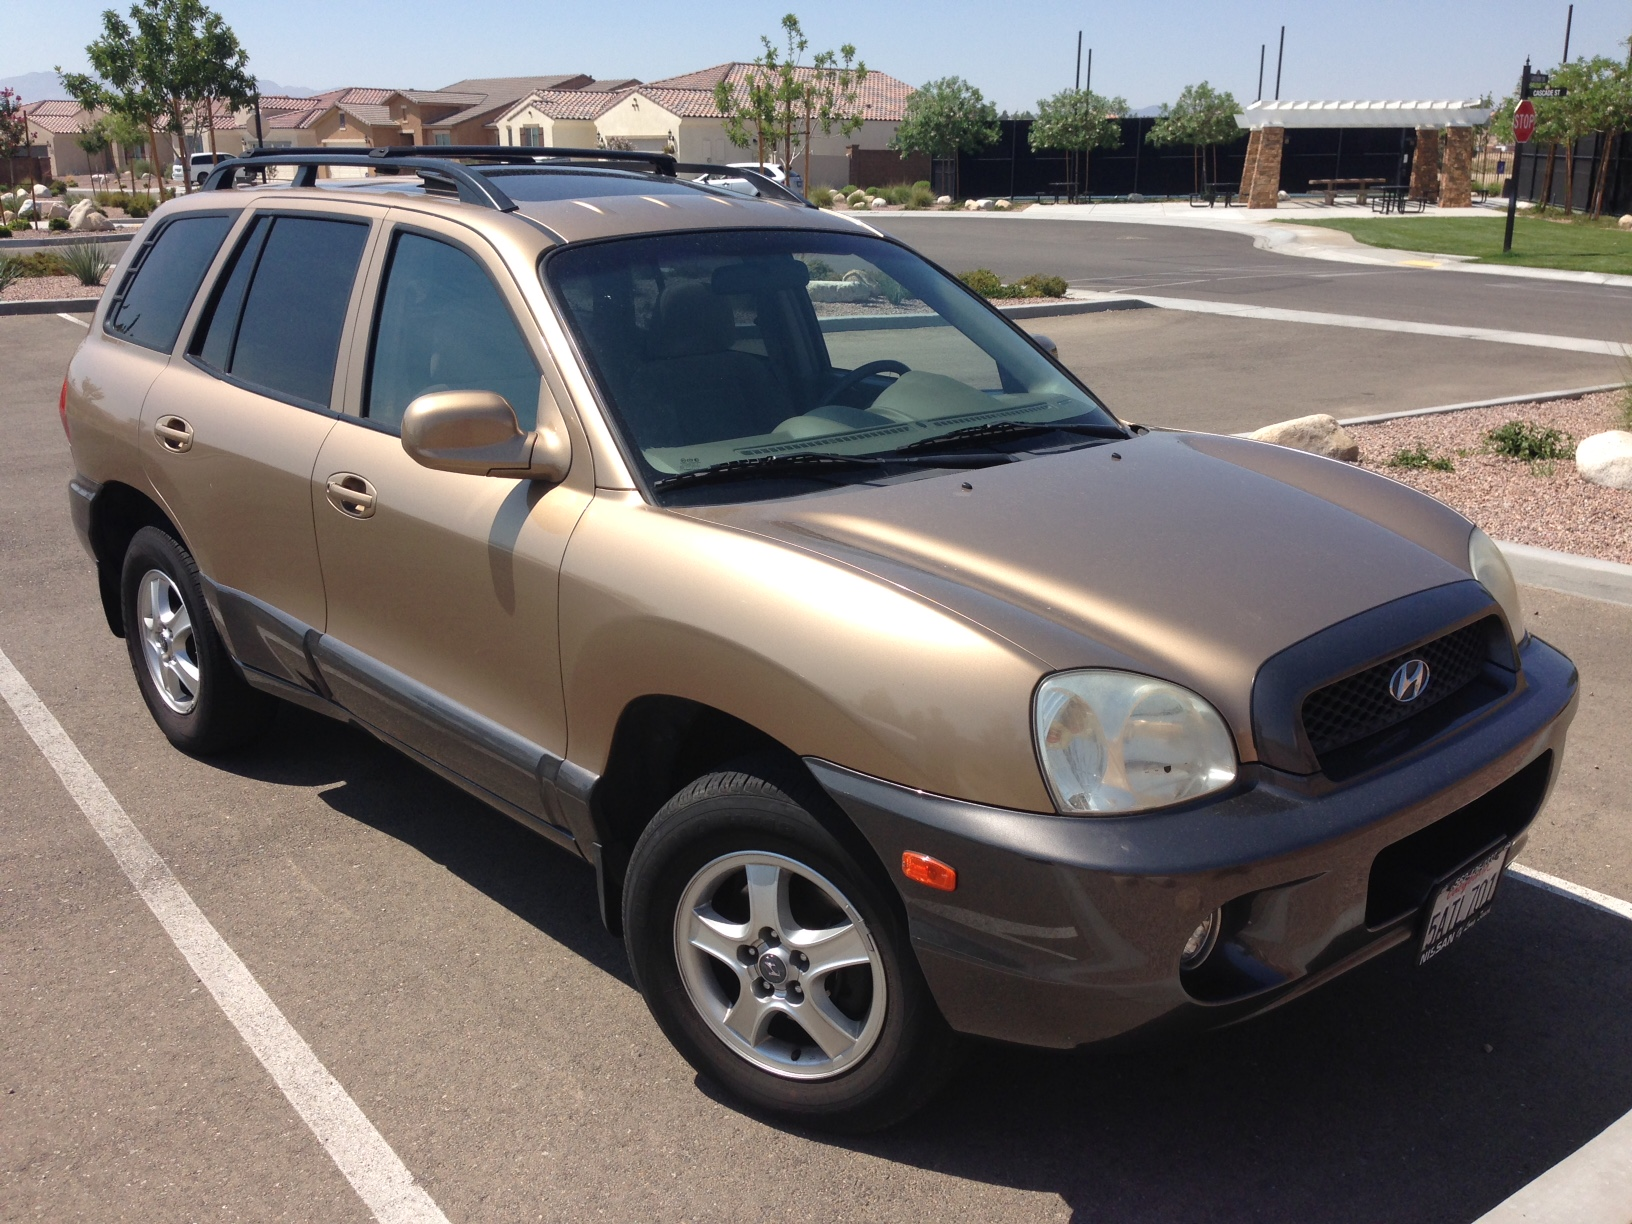 sell-2003-Hyundai-SantaFe-Castaic-Junction